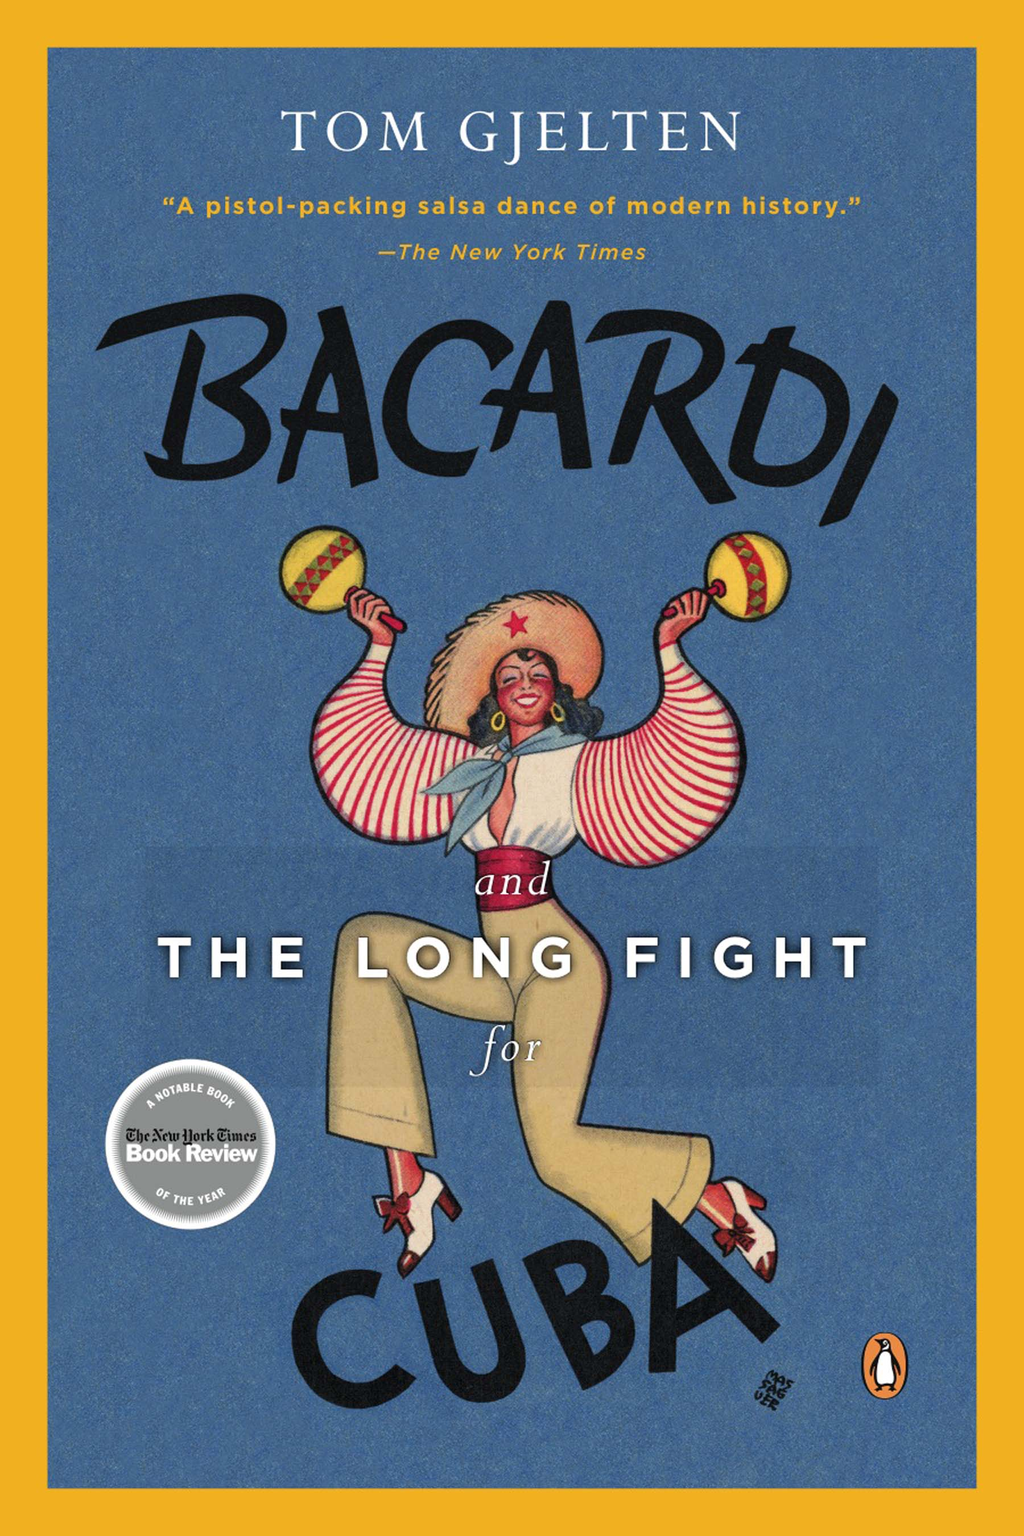 Bacardi and the Long Fight for Cuba: The Biography of a Cause By: Tom Gjelten